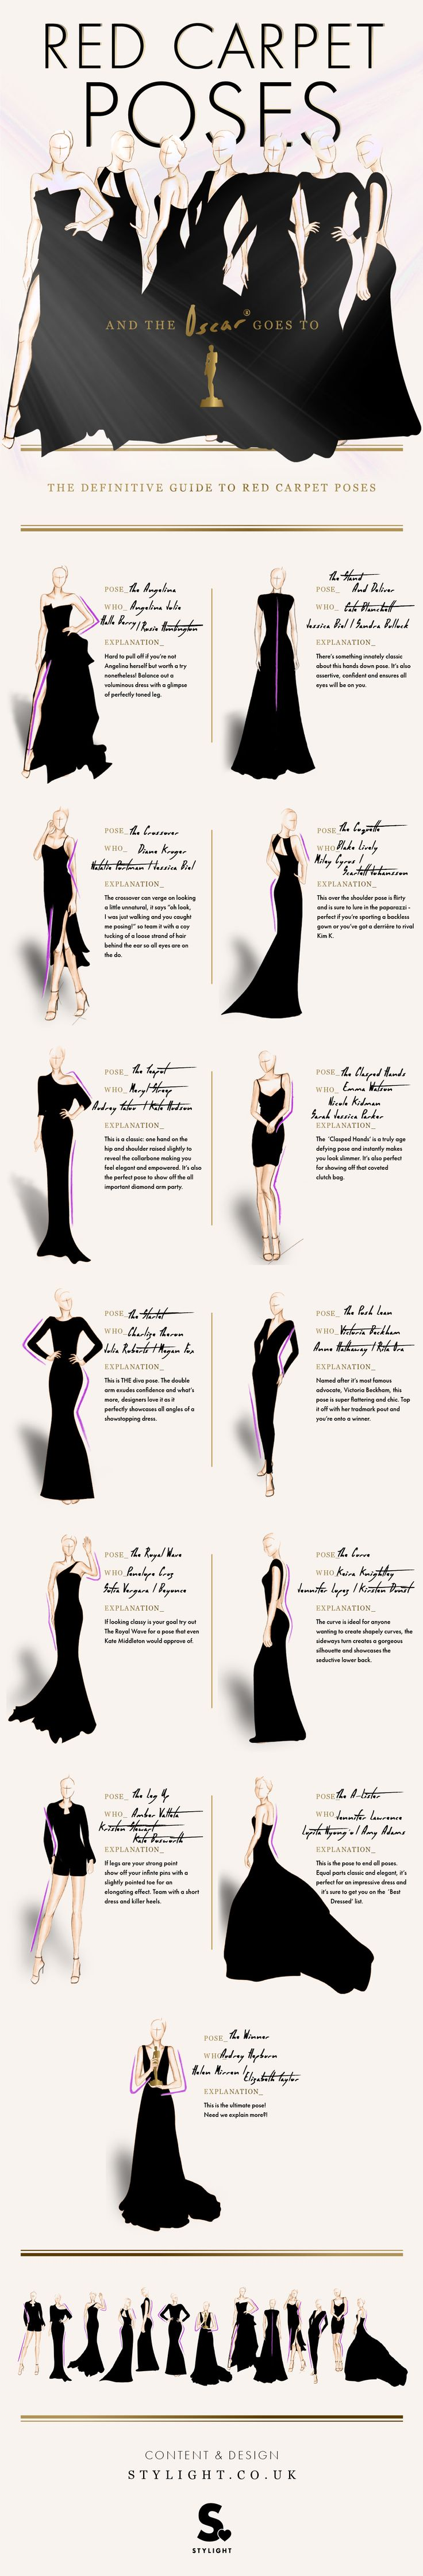 The Definitive Guide to Red Carpet Poses #infographics #fashion #model — Framed Lightscap3s, LLC